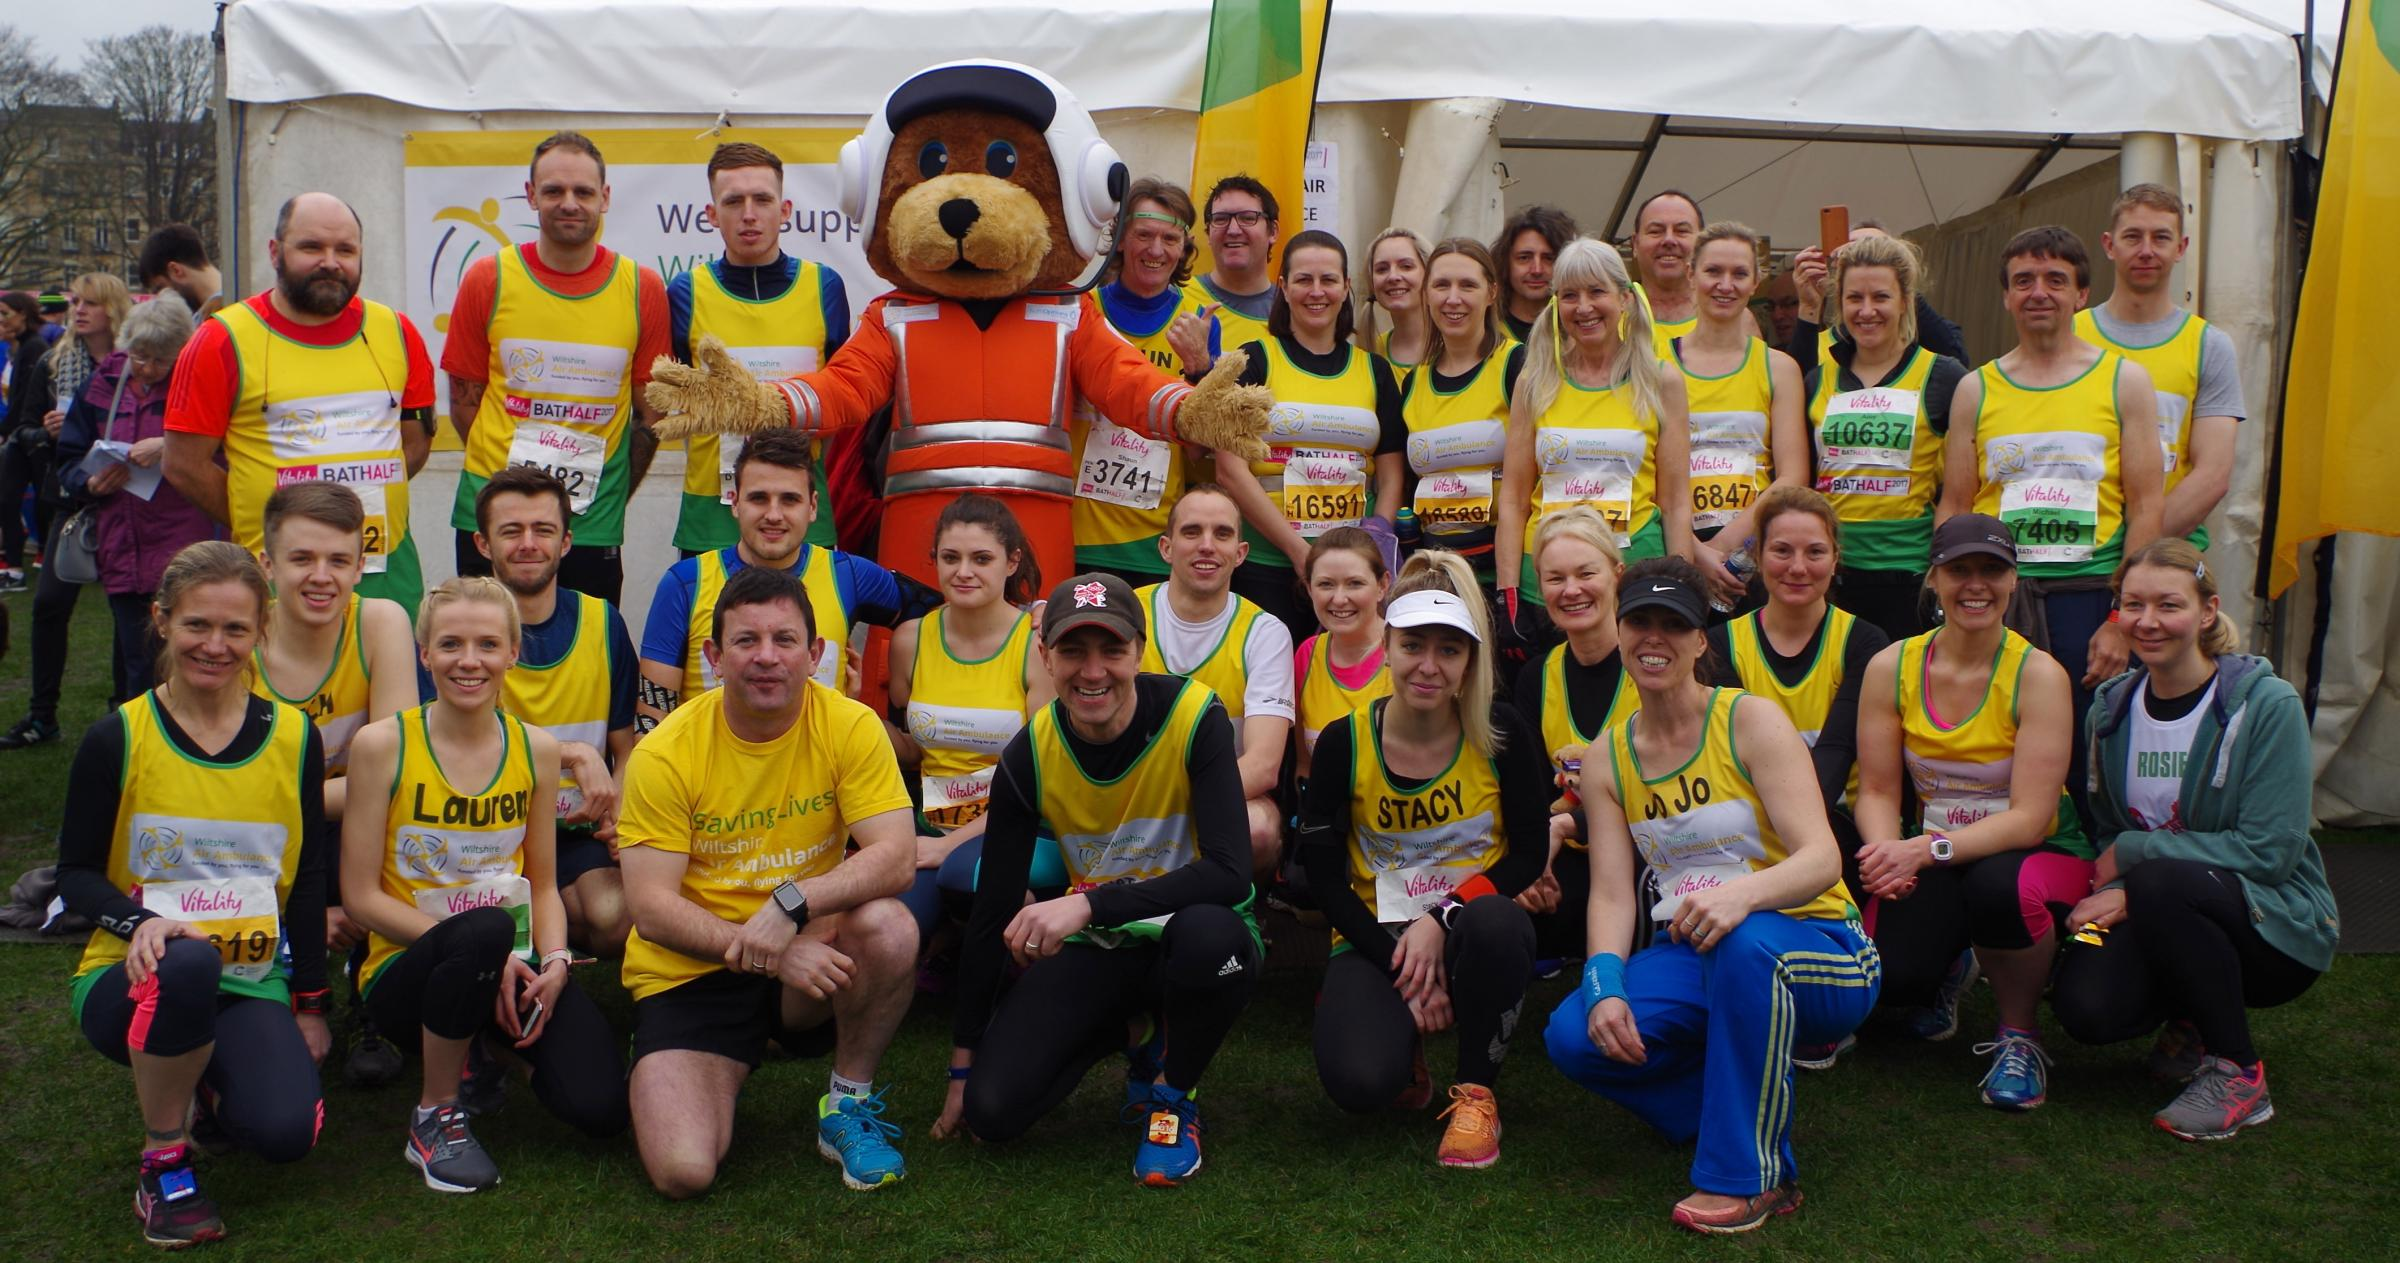 Last year's Wiltshire Air Ambulance team in Bath Half